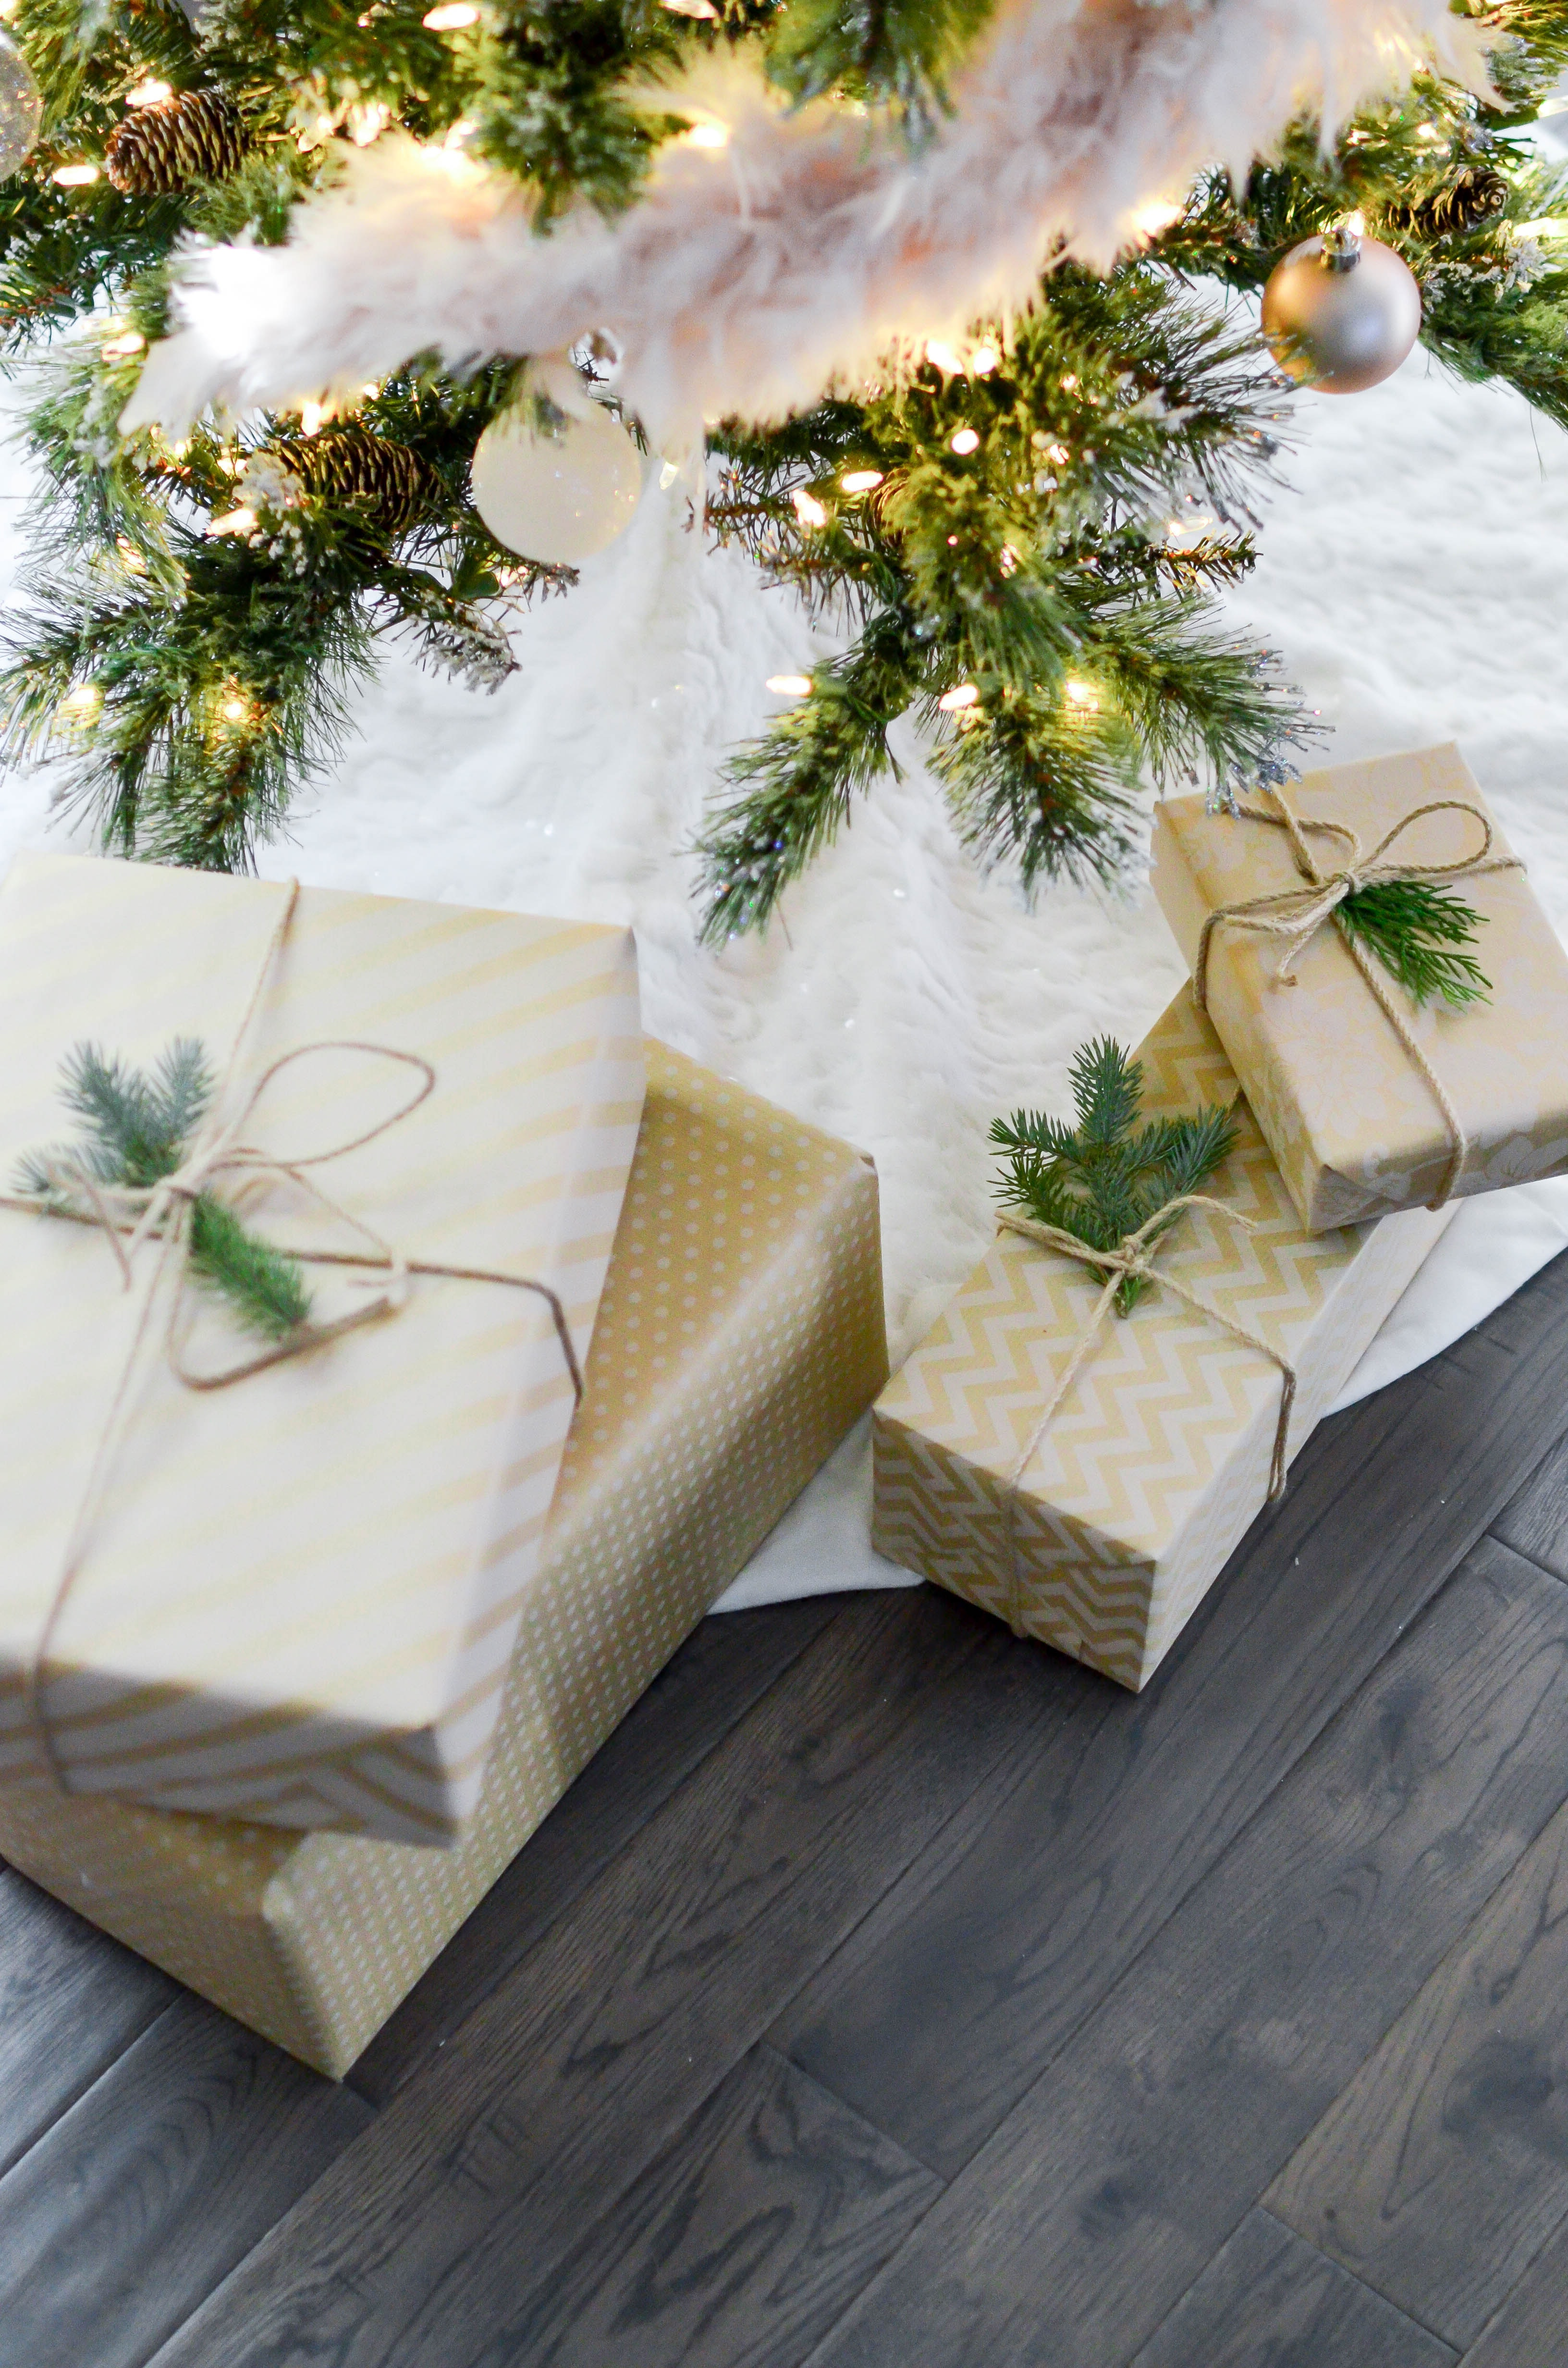 Four Boxes Near Lighted String Lights, Ornament, Holiday, Gold, Presents, HQ Photo